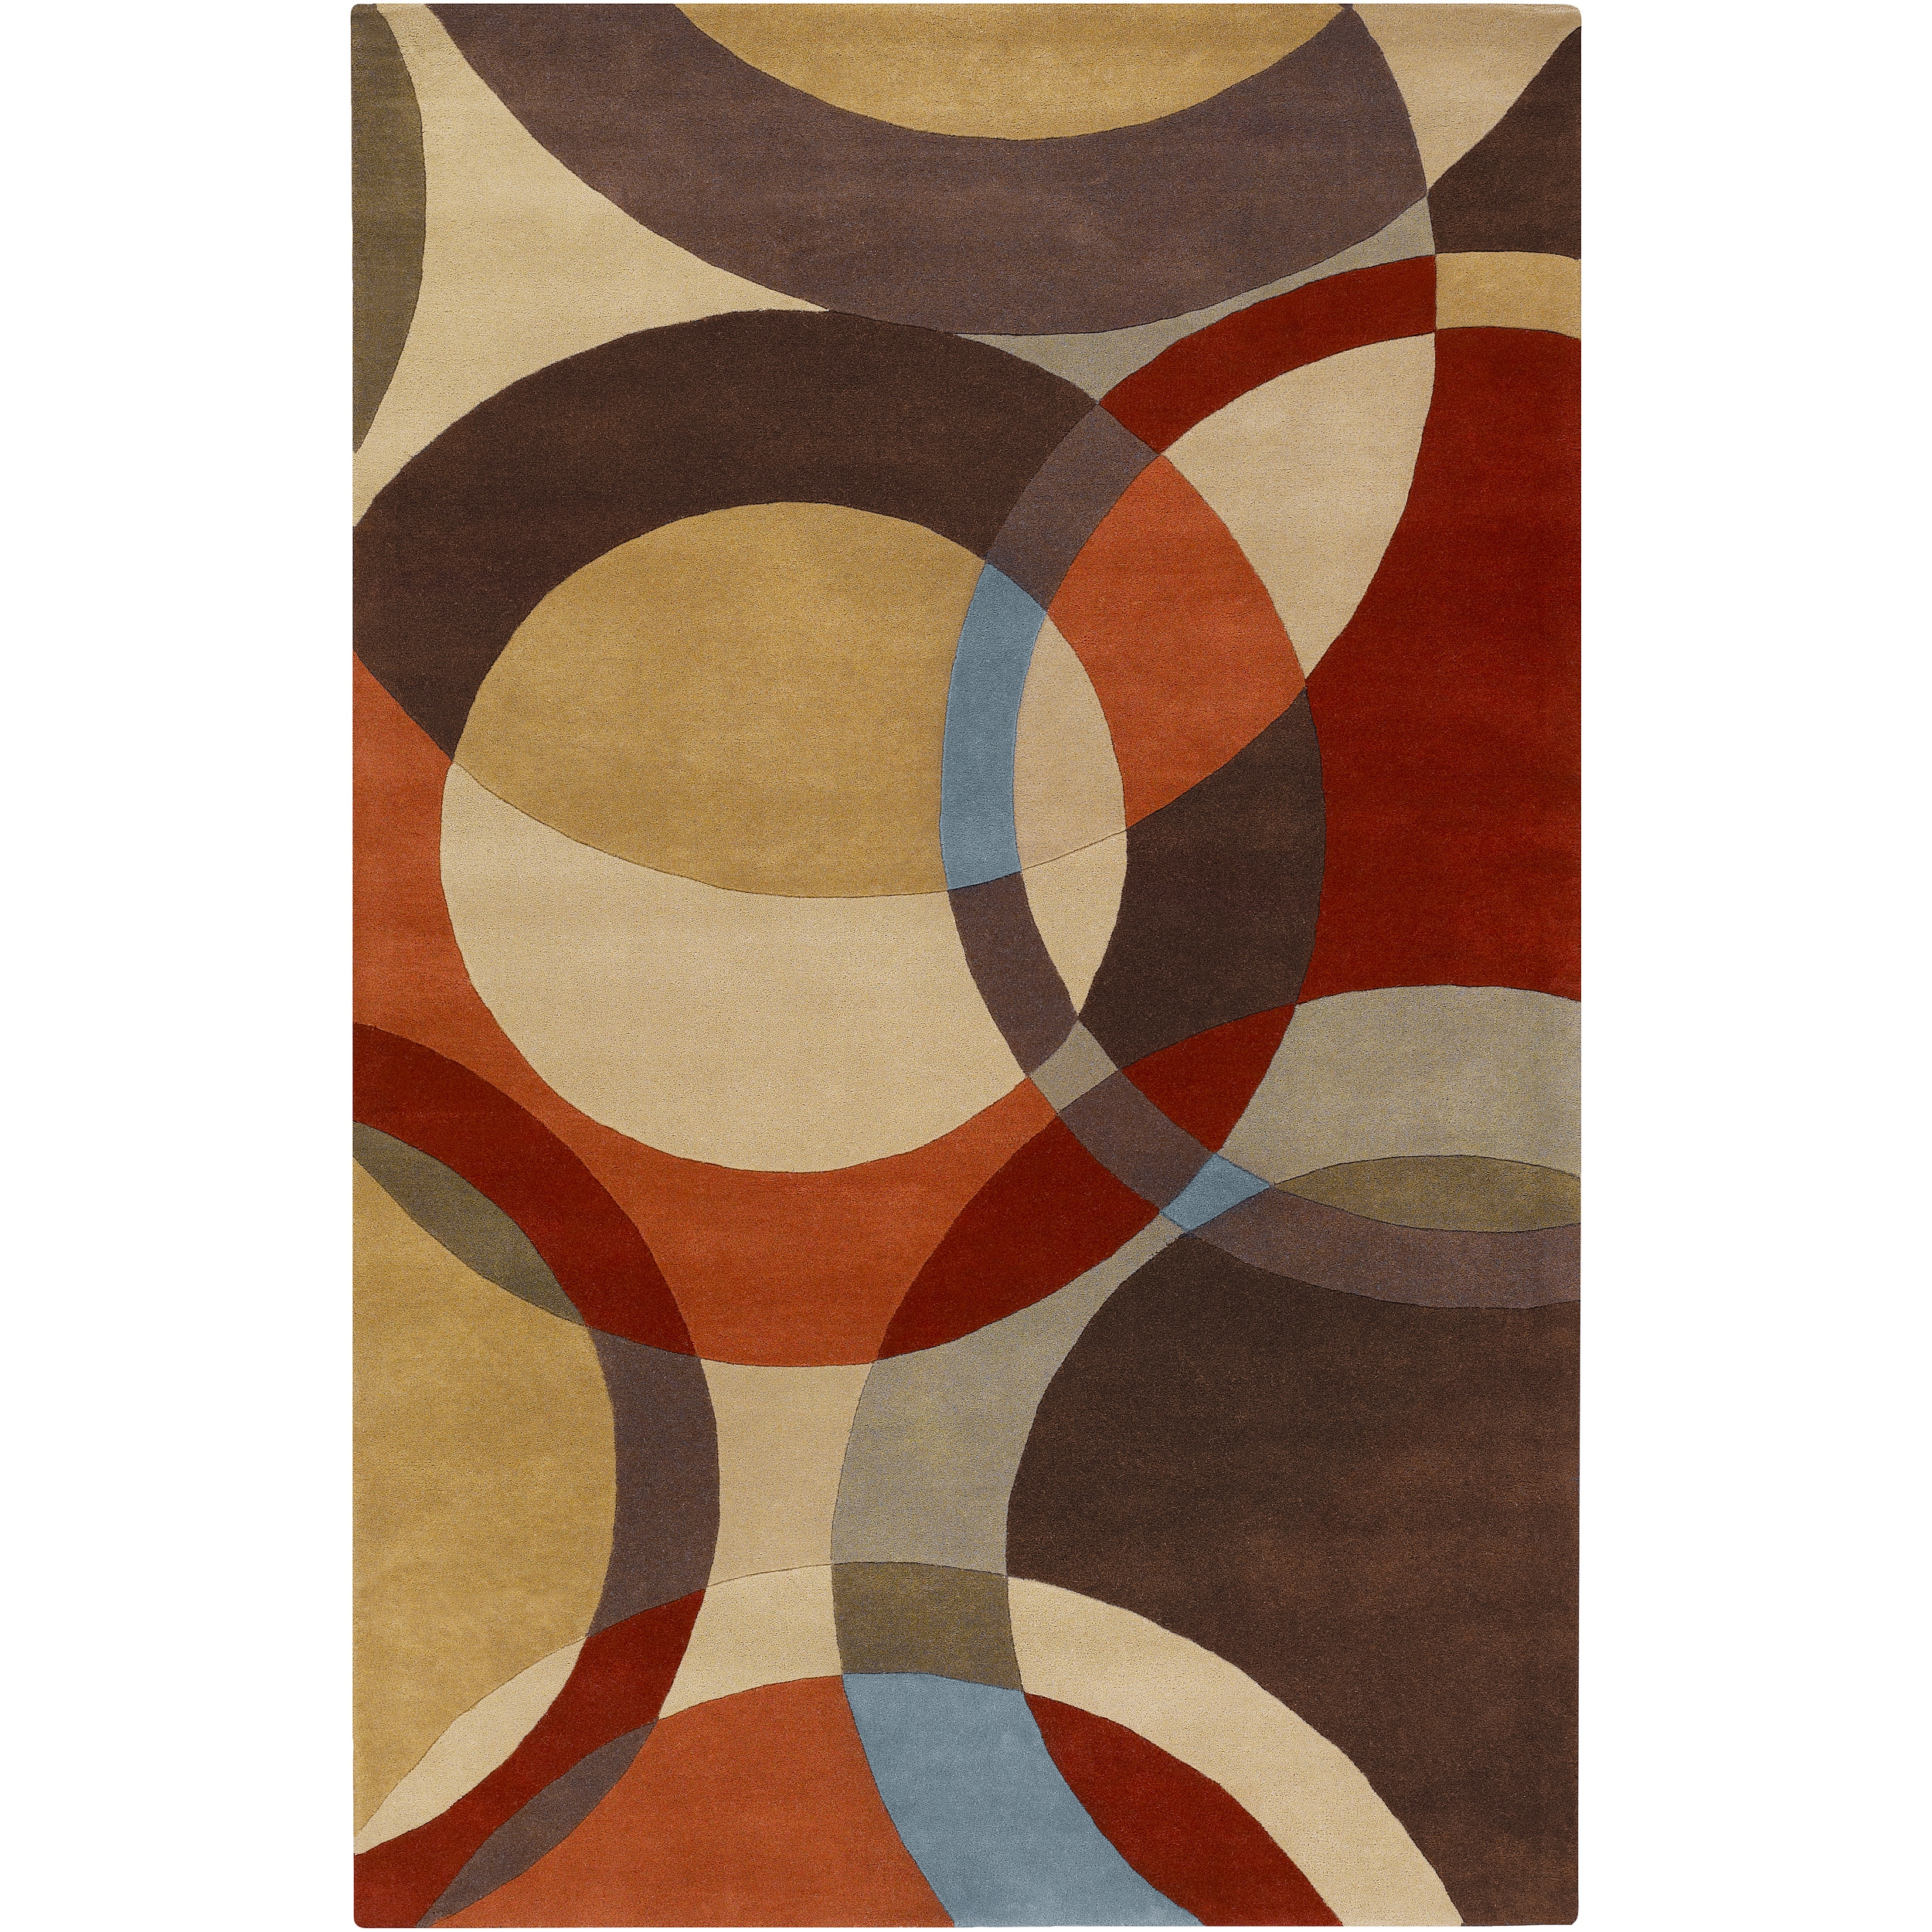 Hand Tufted Contemporary Multi Colored Circles Buxar Wool